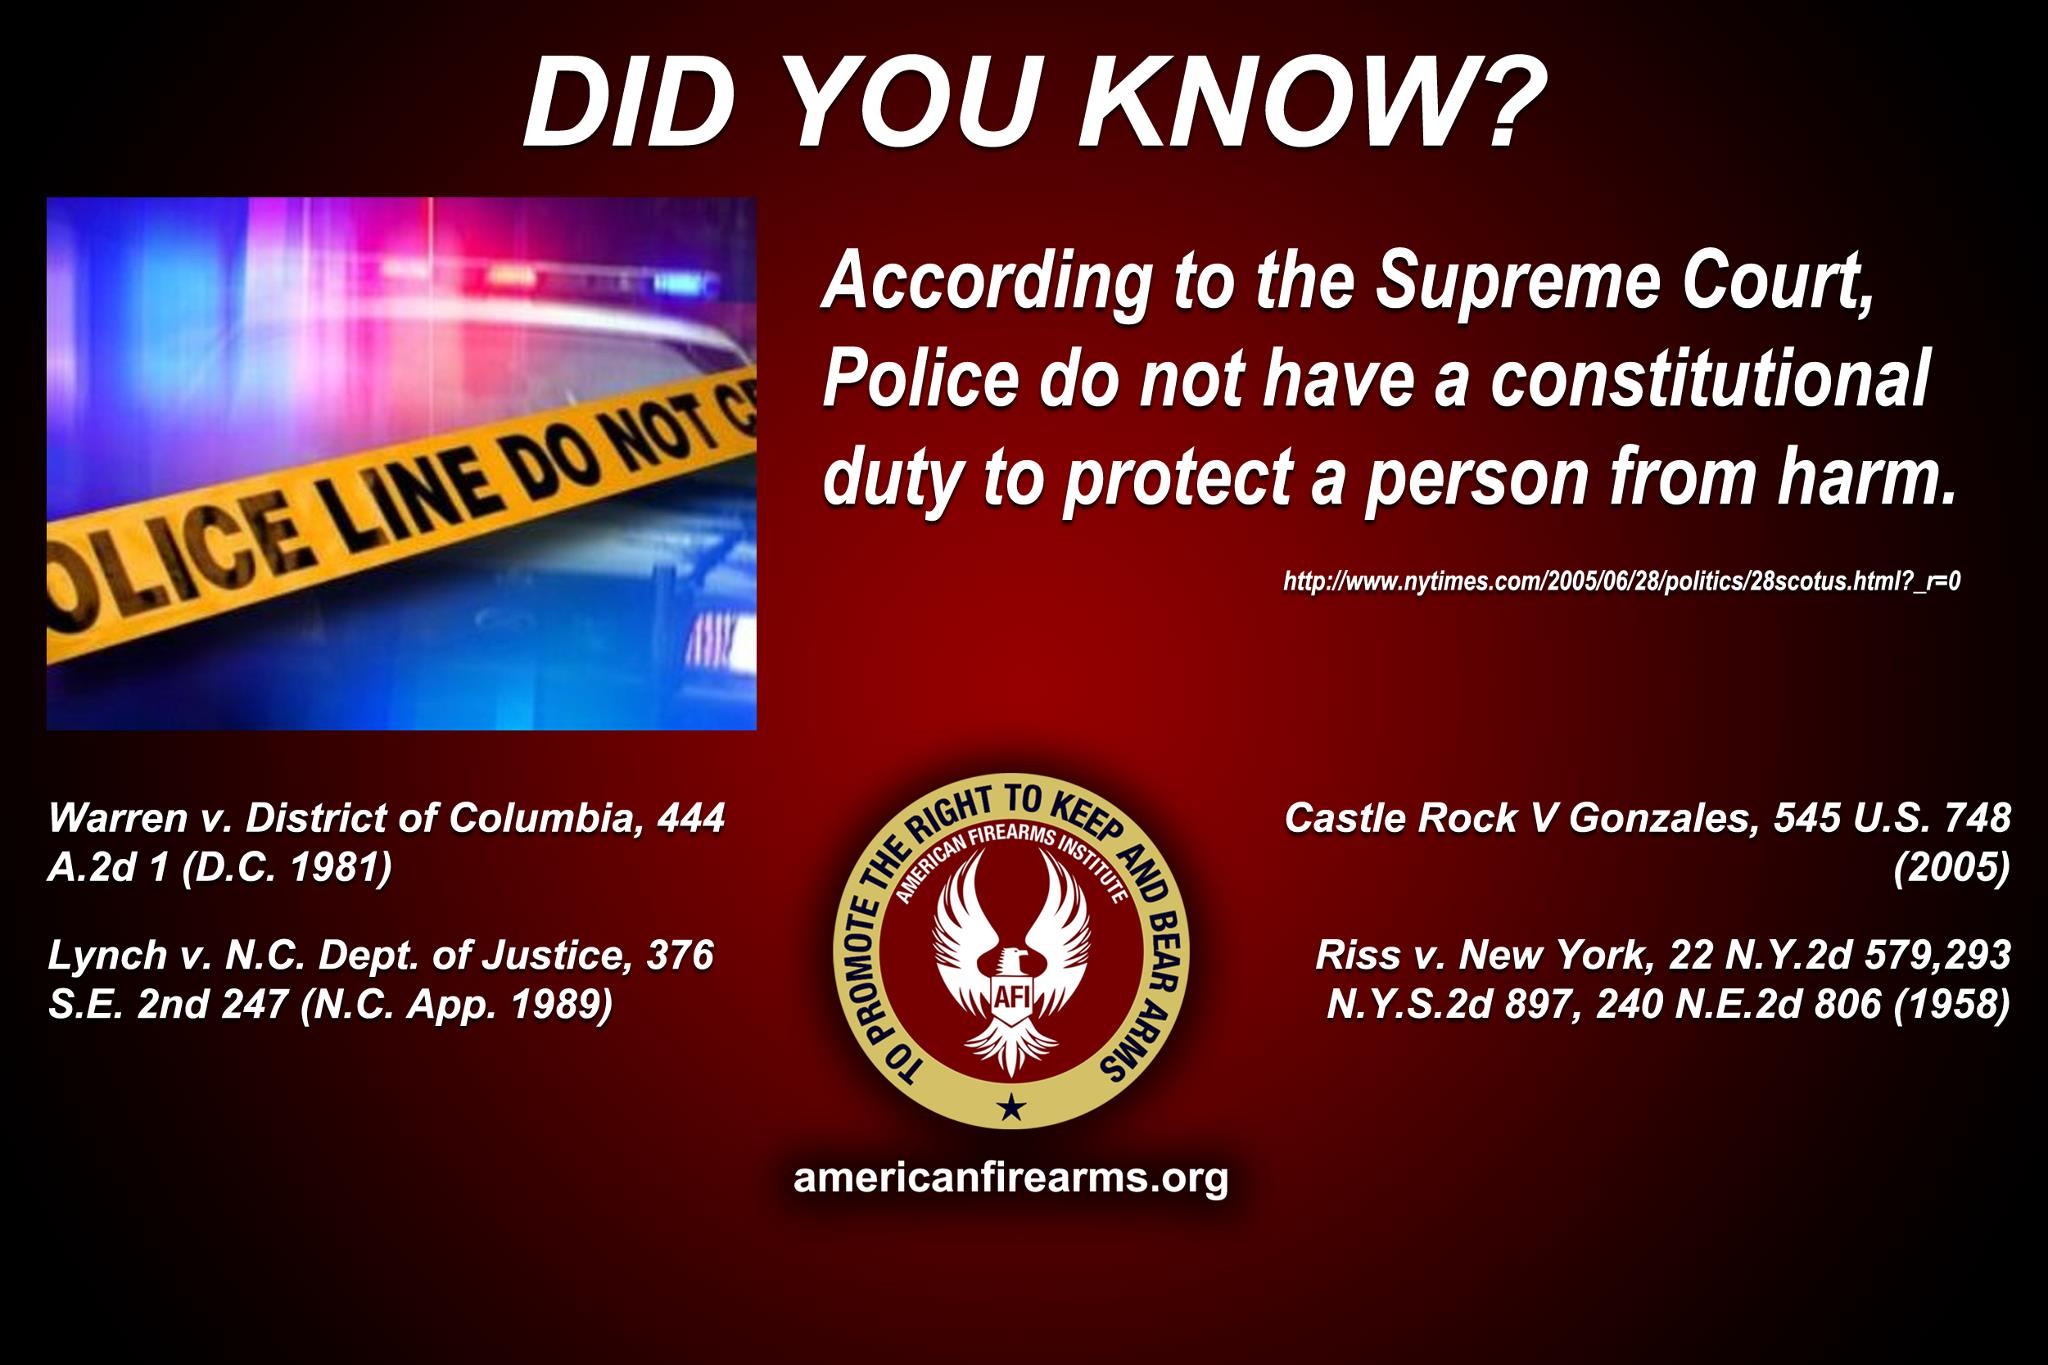 According to the Supreme Court, Police do not have a constitutional duty to protect a person from harm.